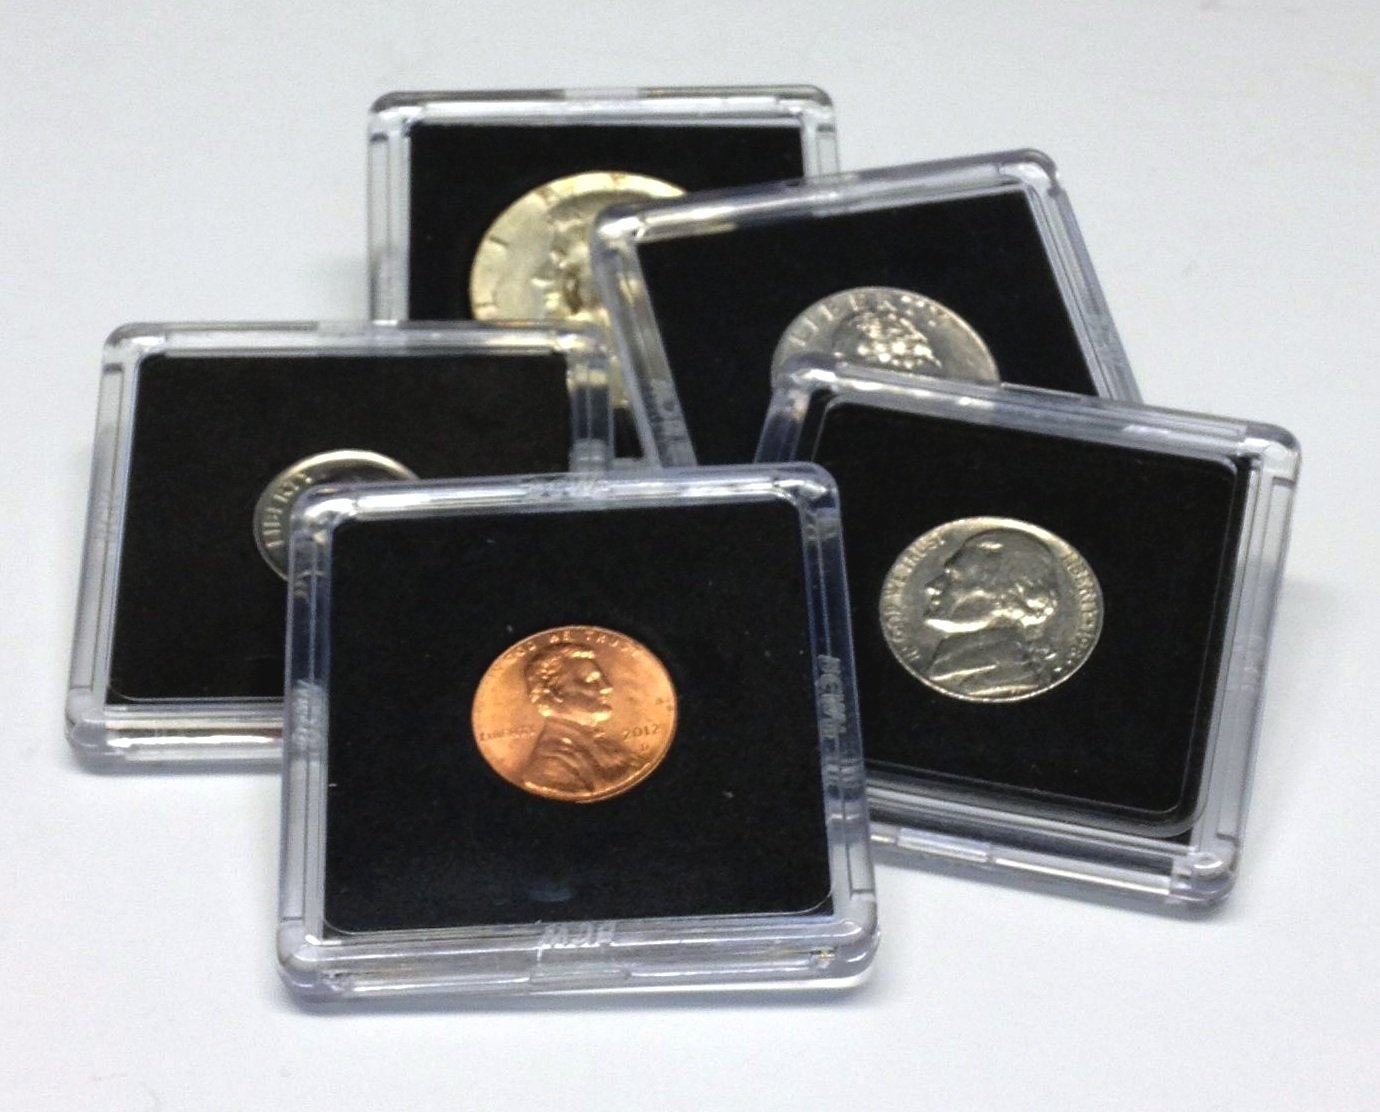 Hobbymaster 25 Assorted Coin Snap Holders, 5 Different Sizes BCW